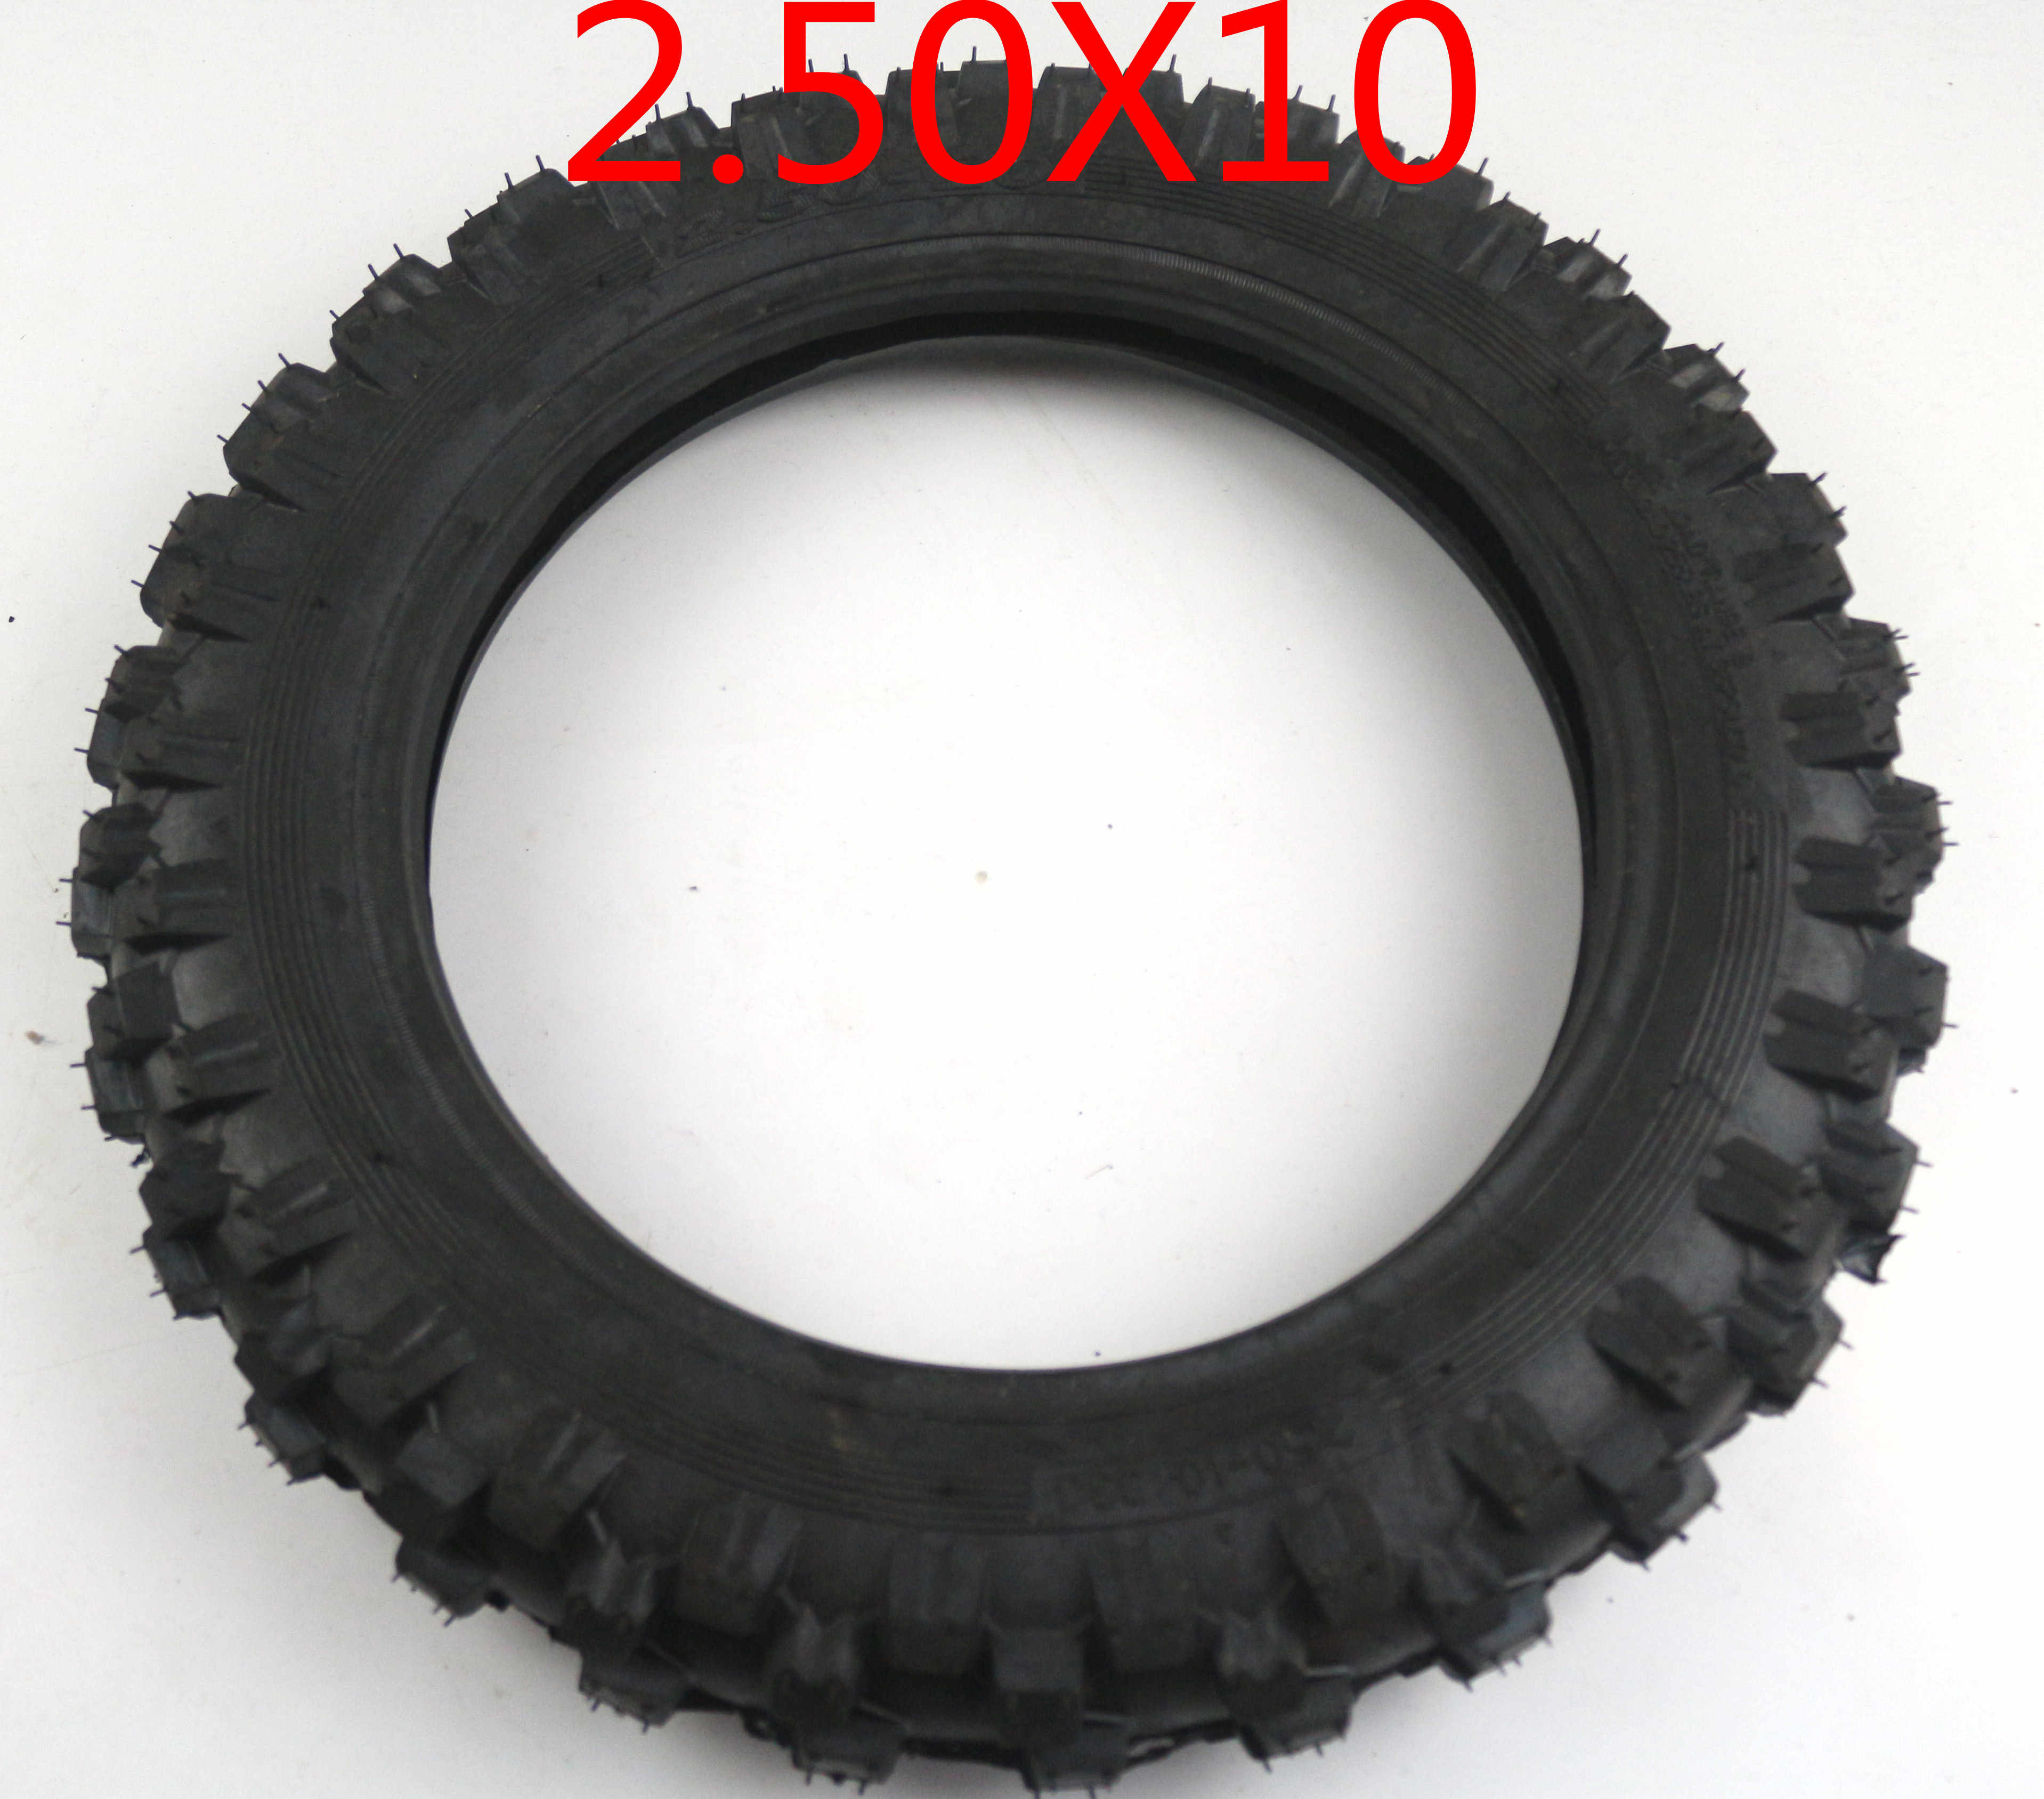 Pocket Bikes,Yamaha PW50 CLEO 2.50//2.75-10 Inner Tubes for Gas Scooters